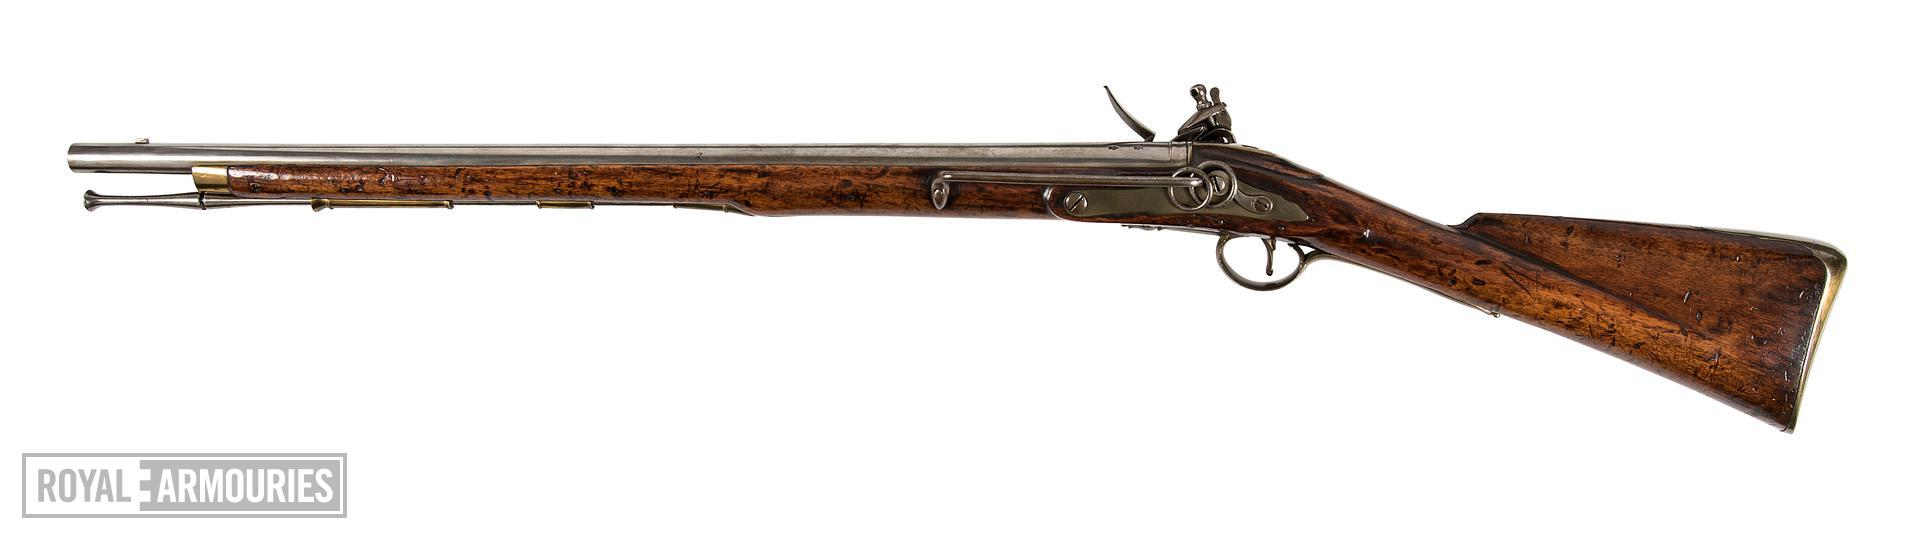 Flintlock muzzle-loading military carbine - Eliott Light Dragoon Carbine